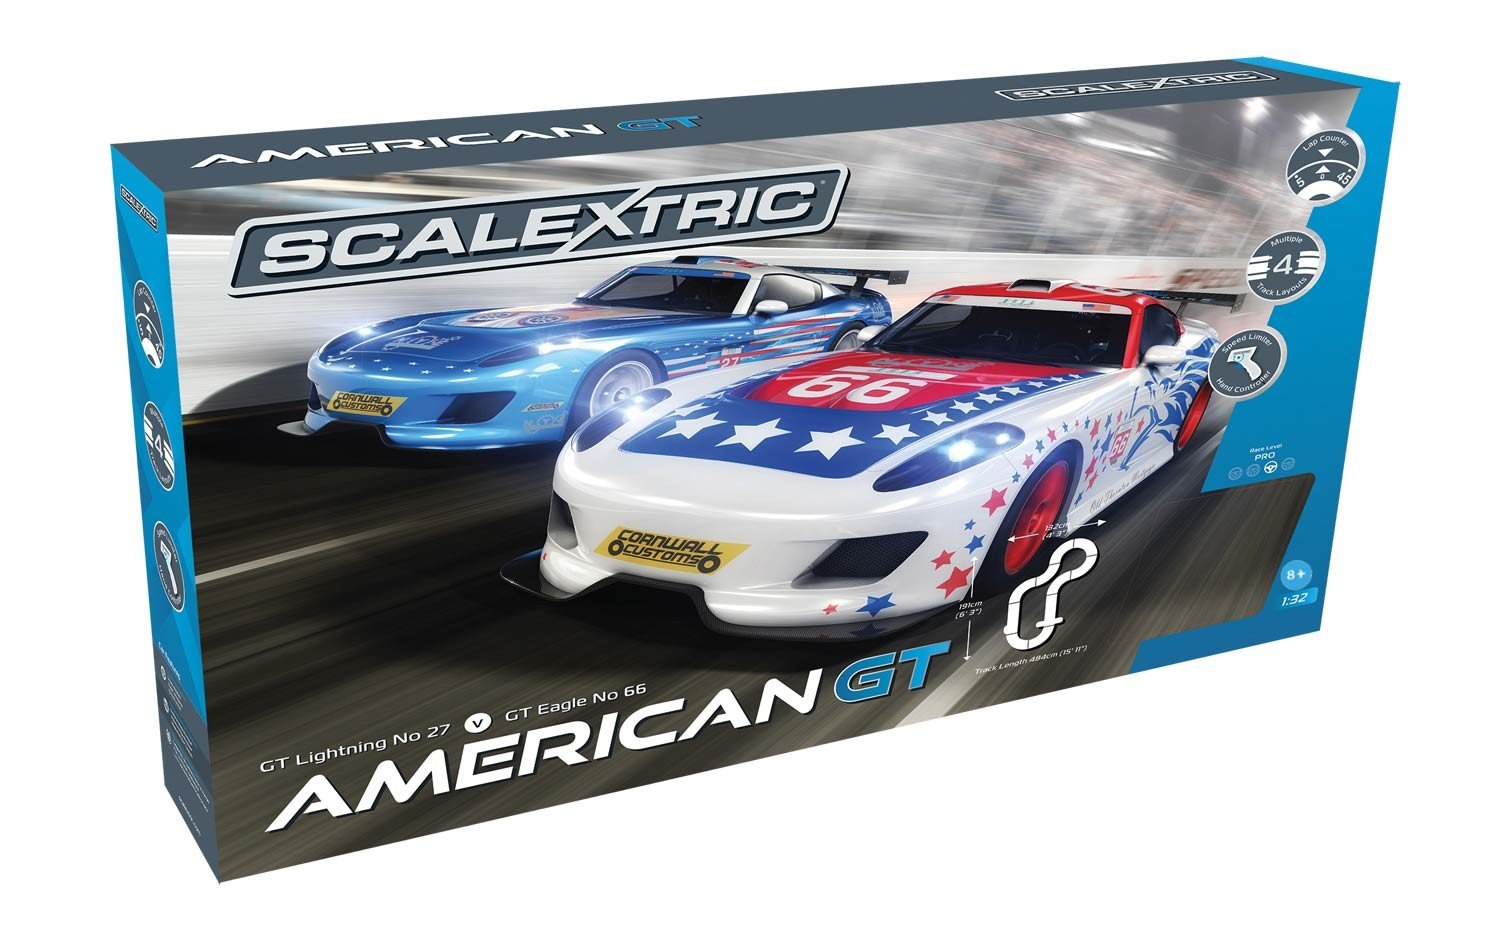 Scalextric America GT 1:32 Slot Car Race Track C1361T Playset by Scalextric (Image #1)